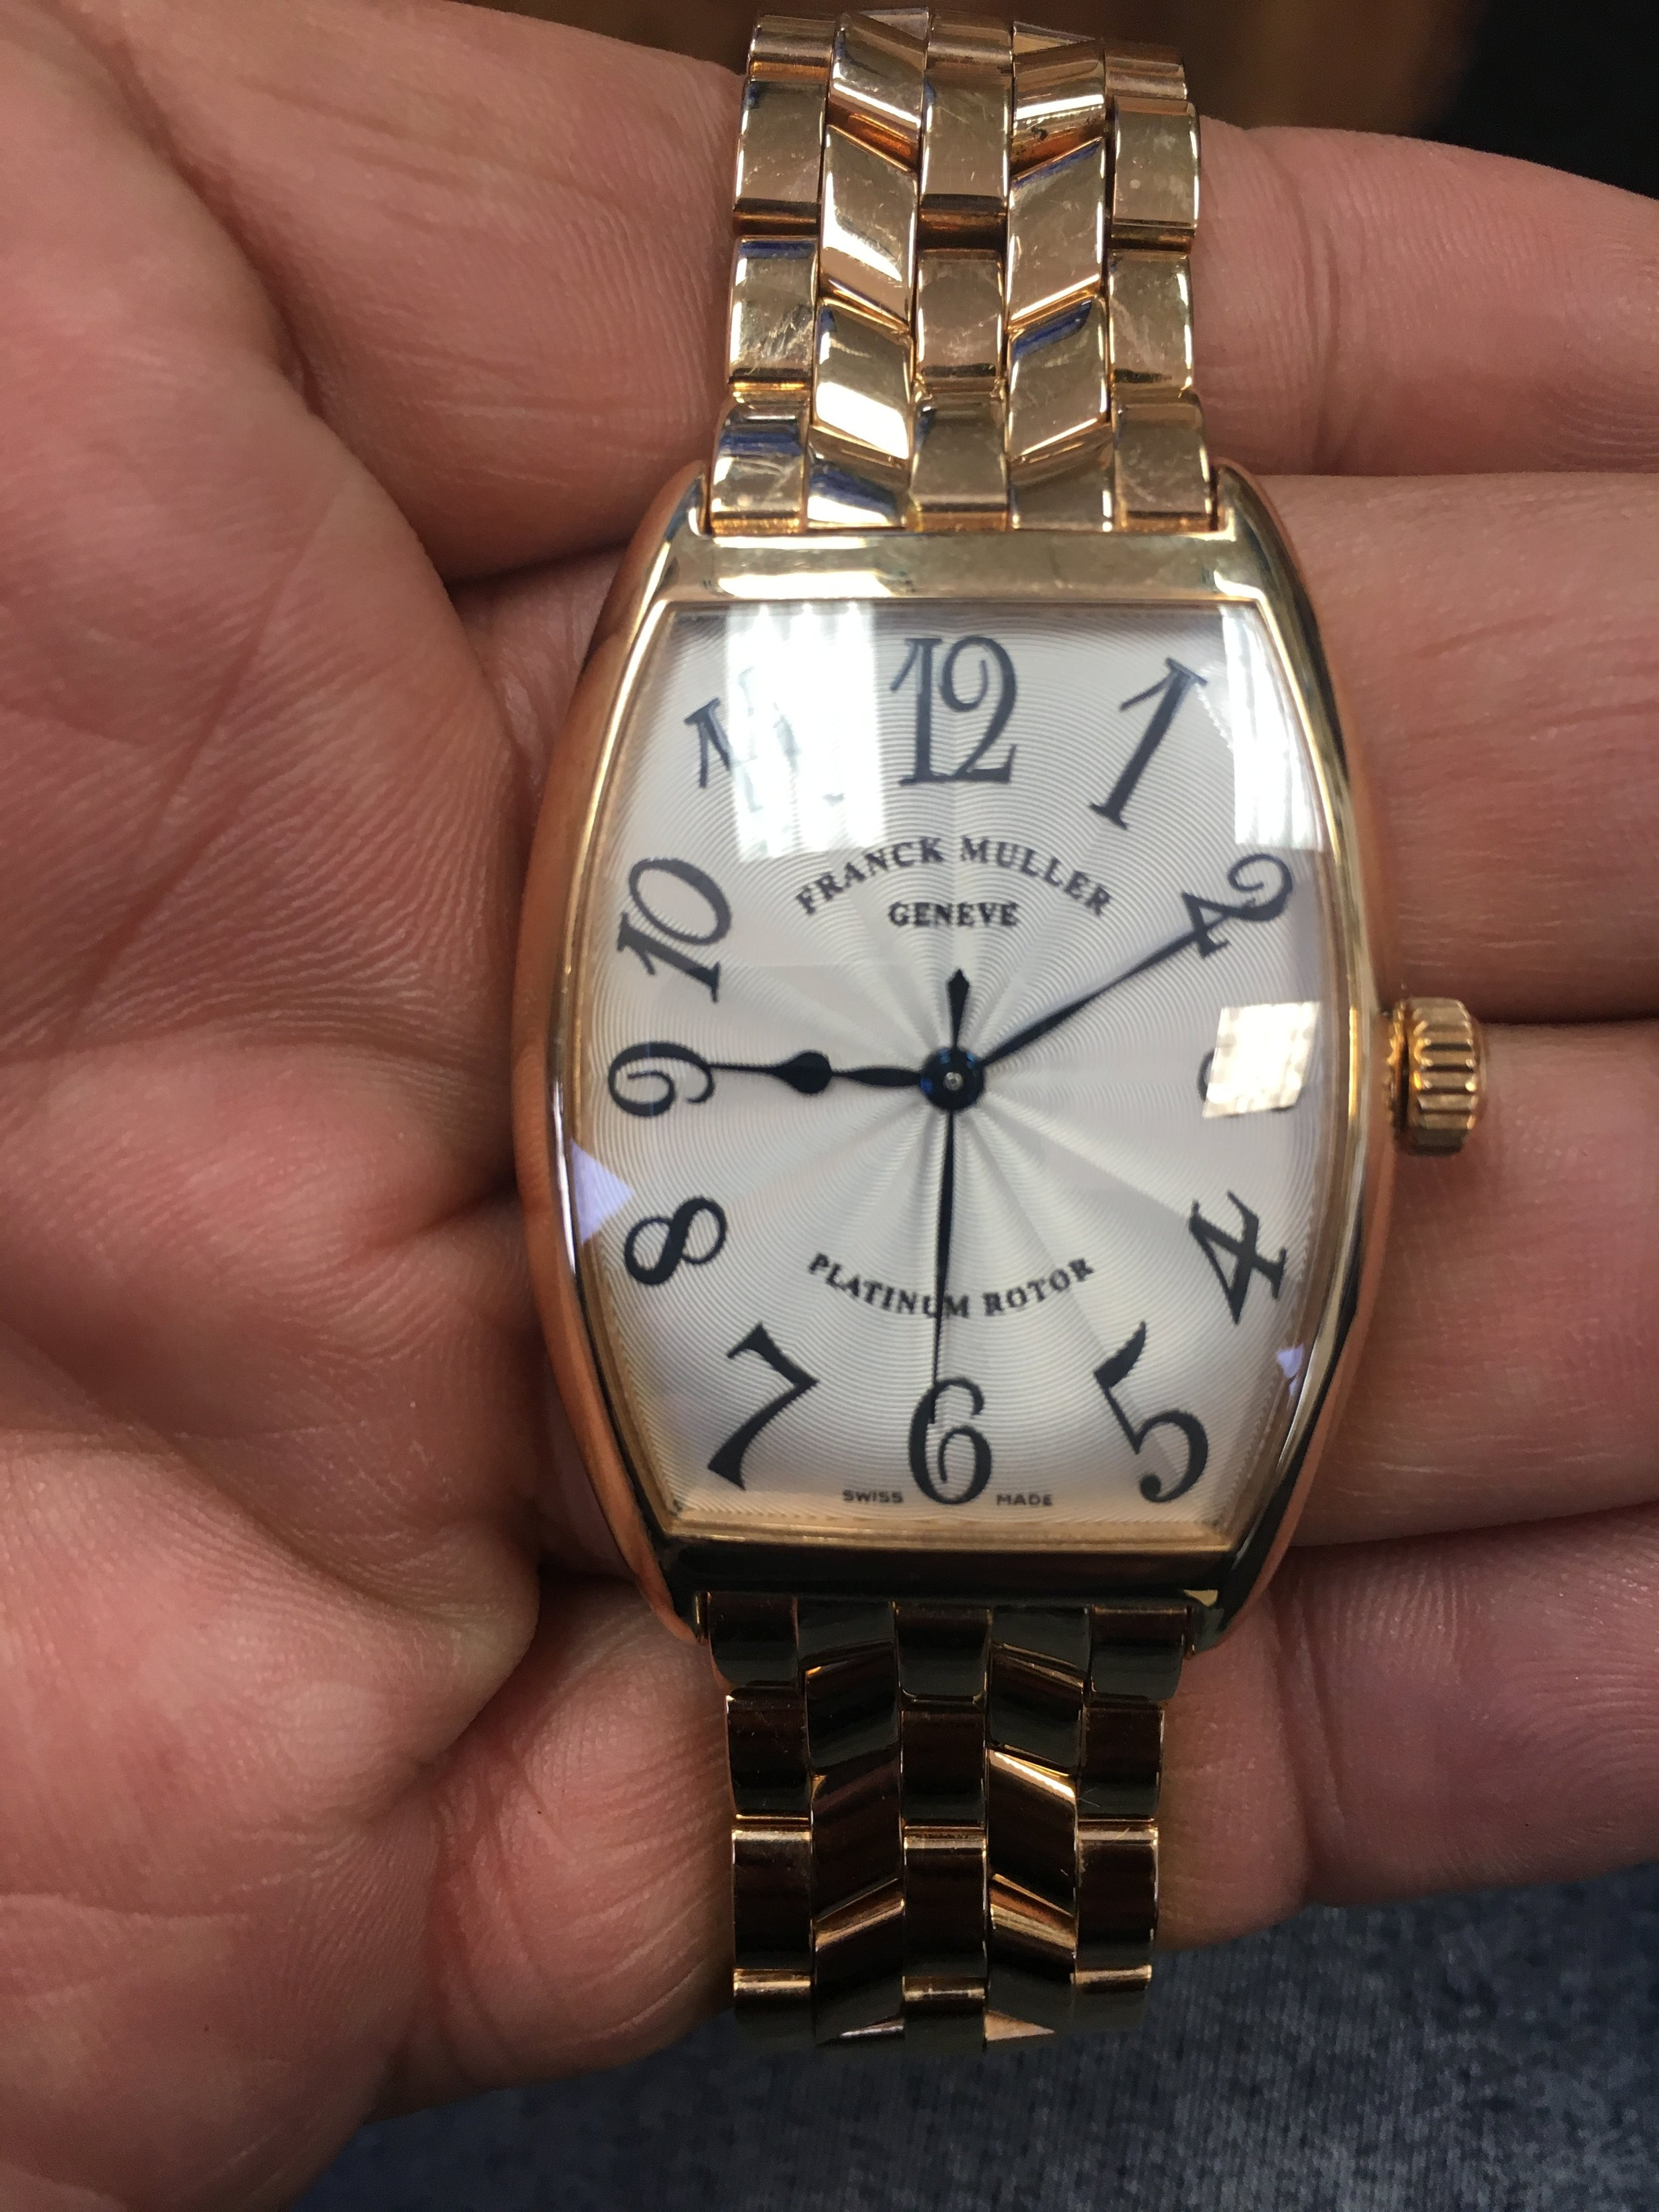 franck muller geneve platinum rotor. Tampa jewelry store watch repair